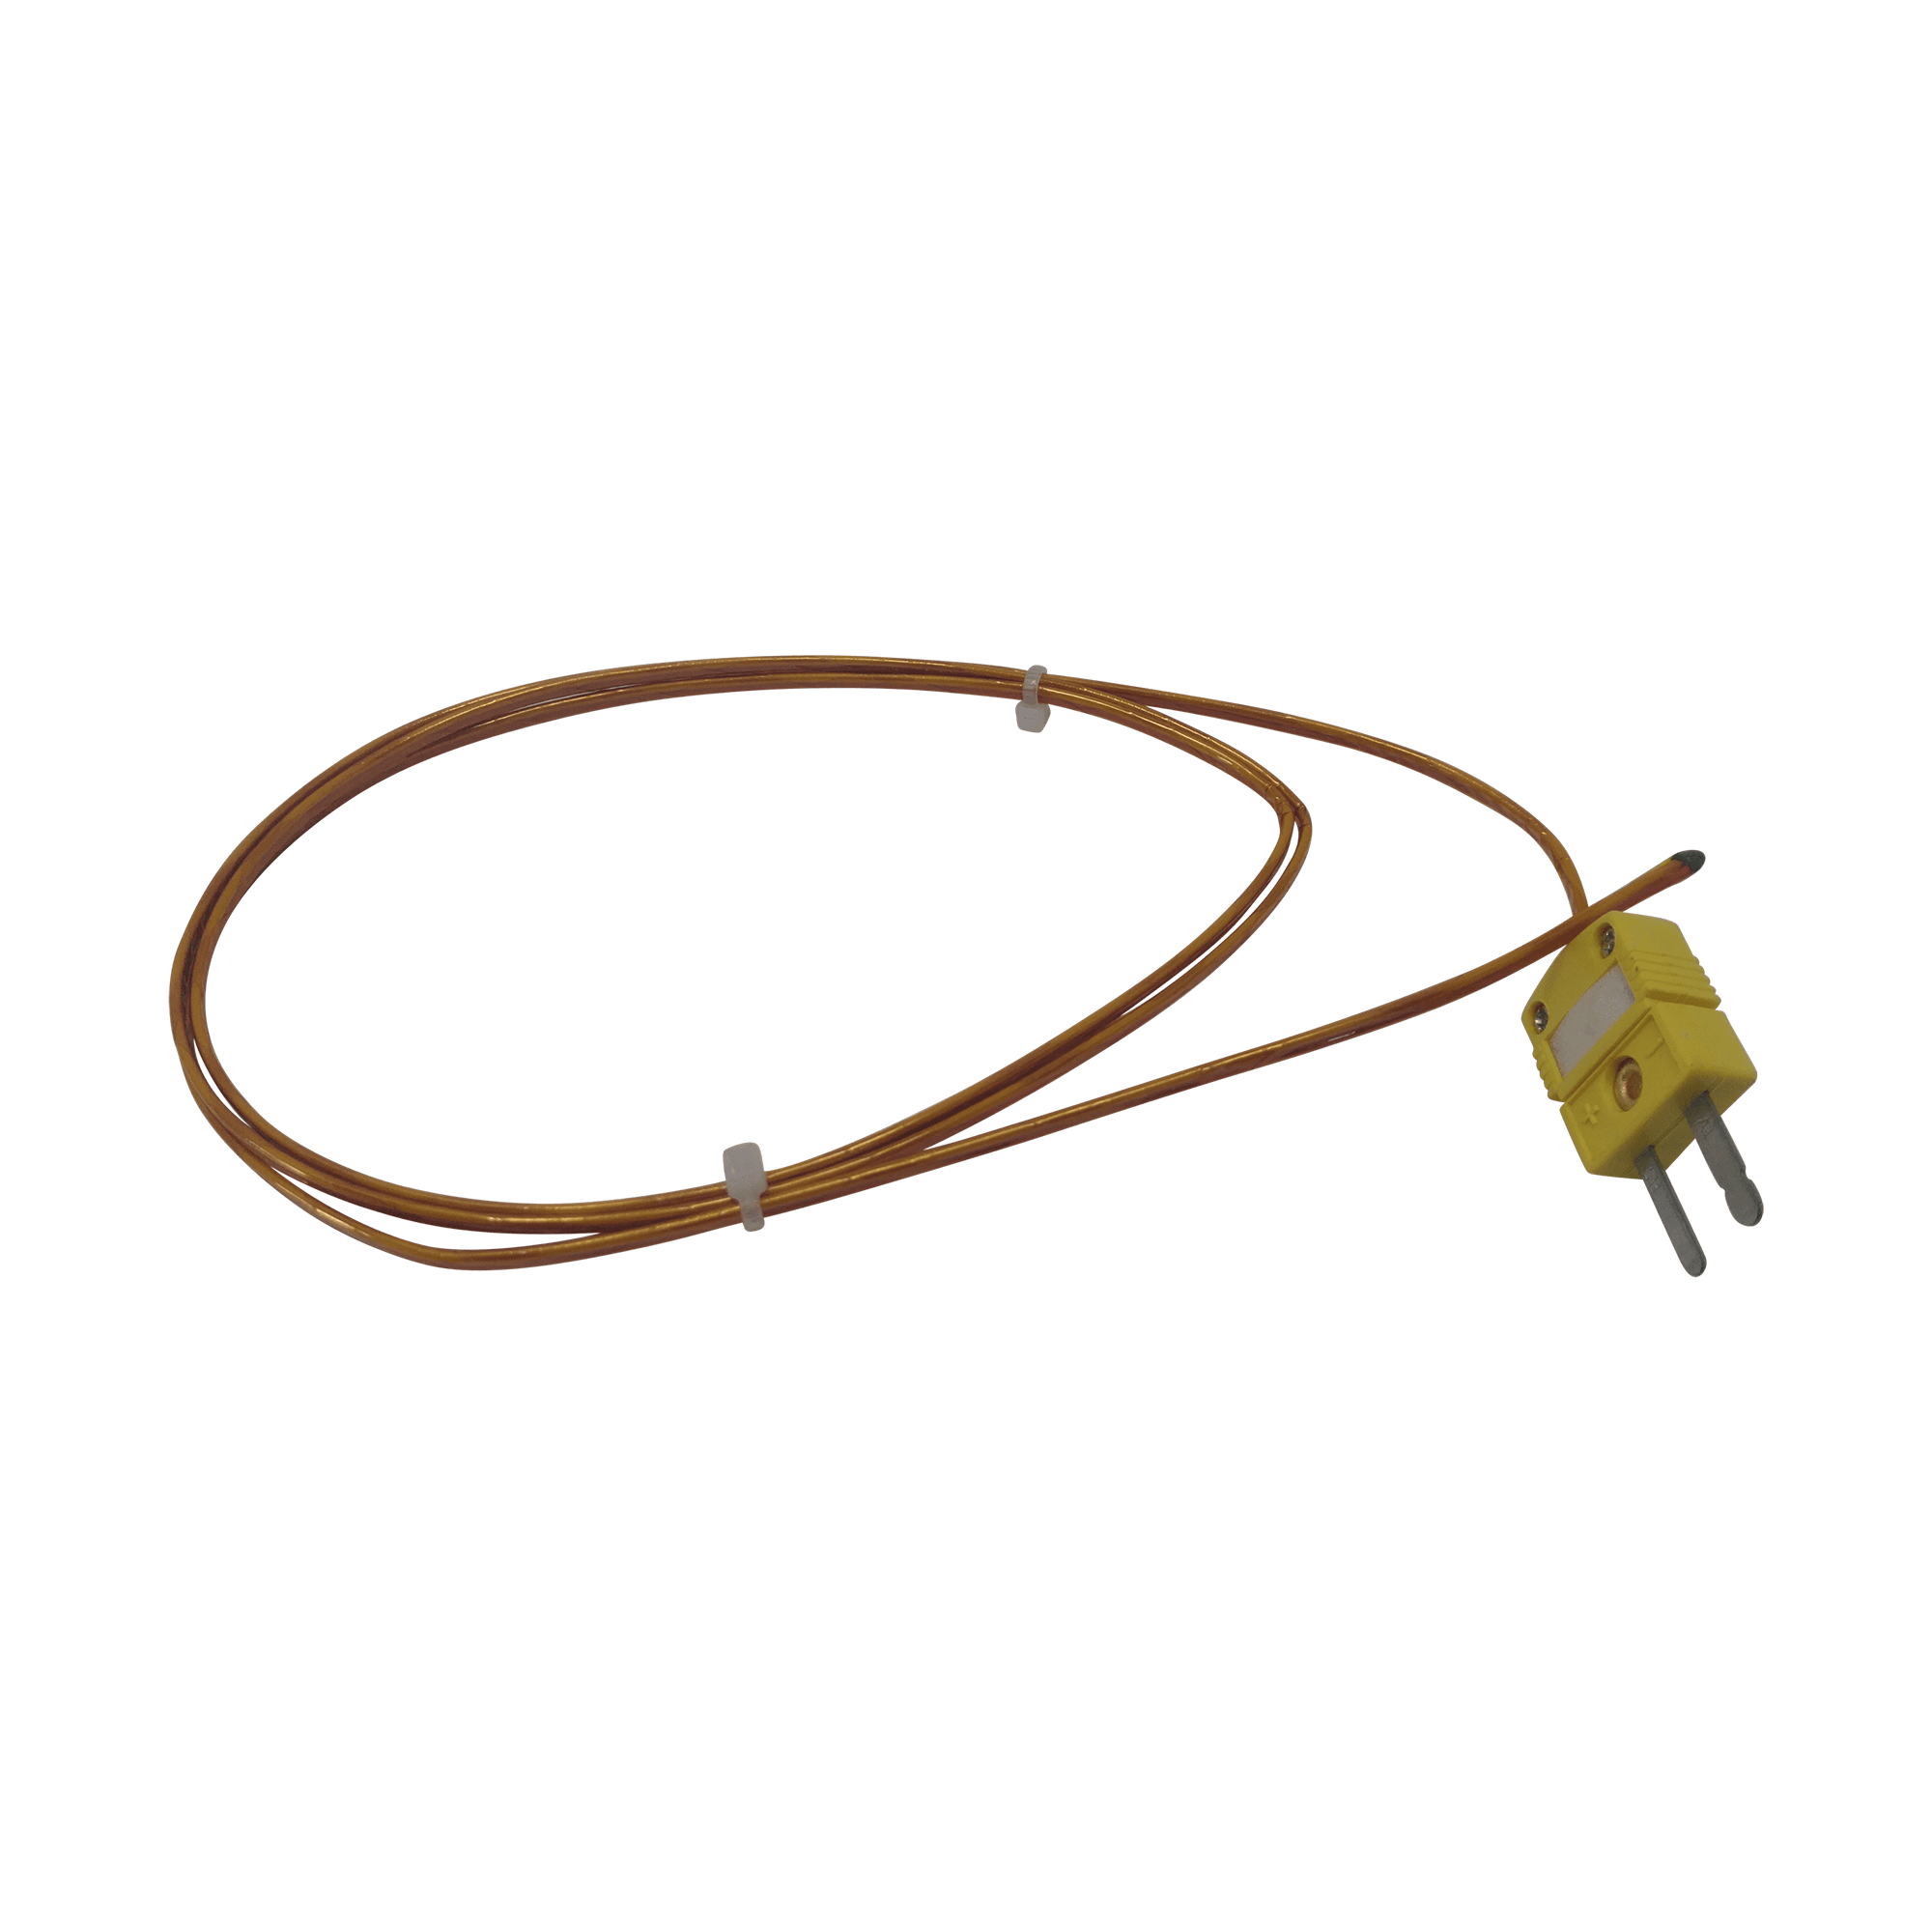 KIT0217 | Traeger Thermocouple Probe Kit   KIT0217